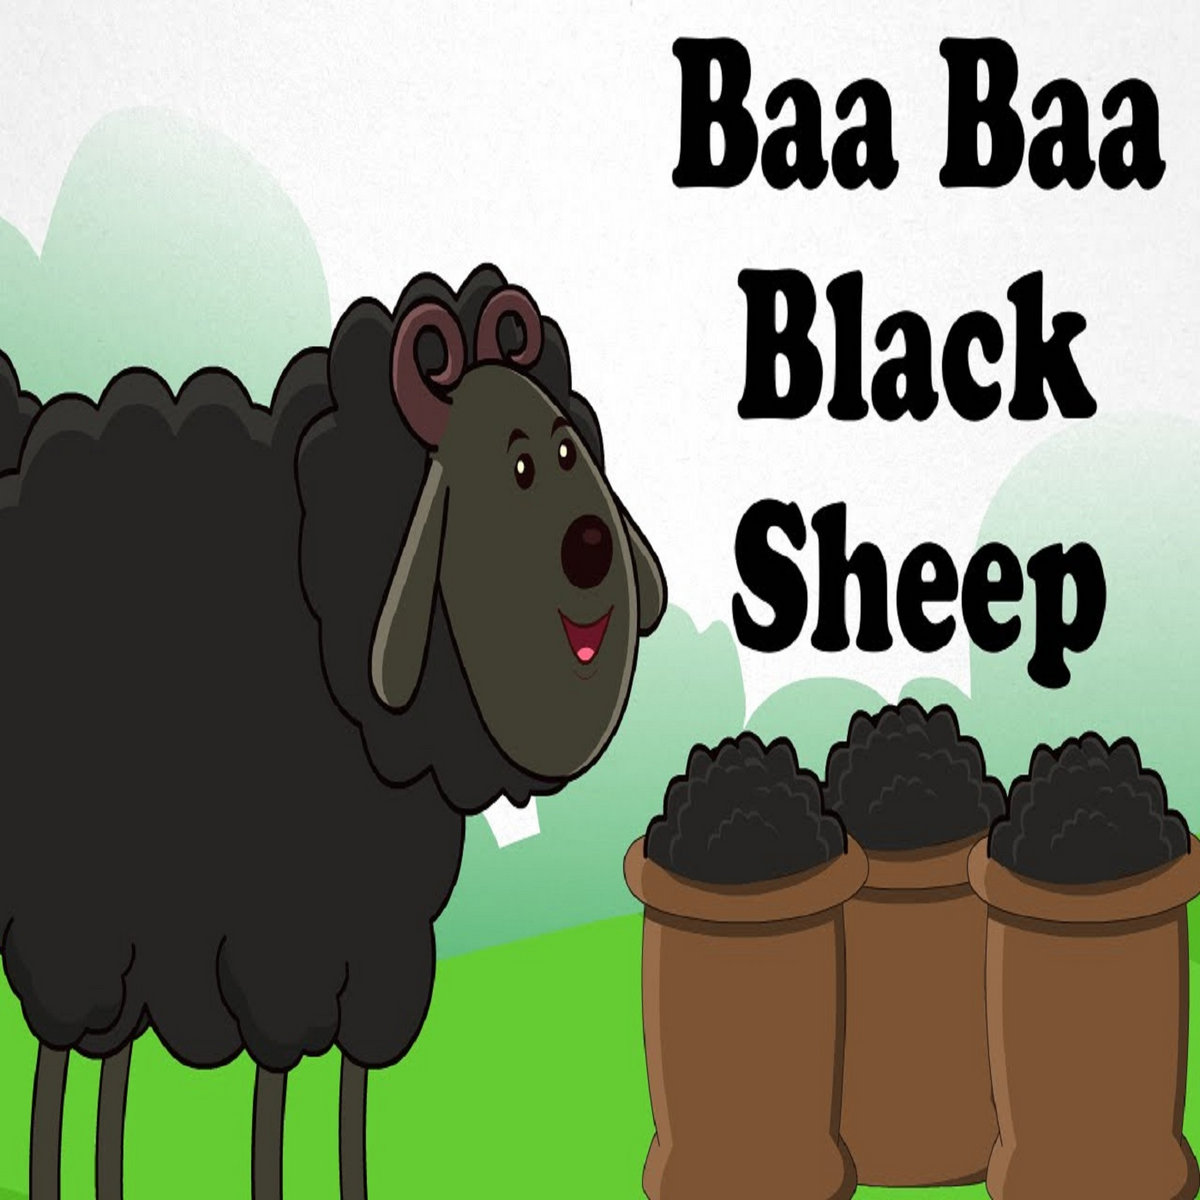 Black Sheep Nursery Rhyme Thenurseries